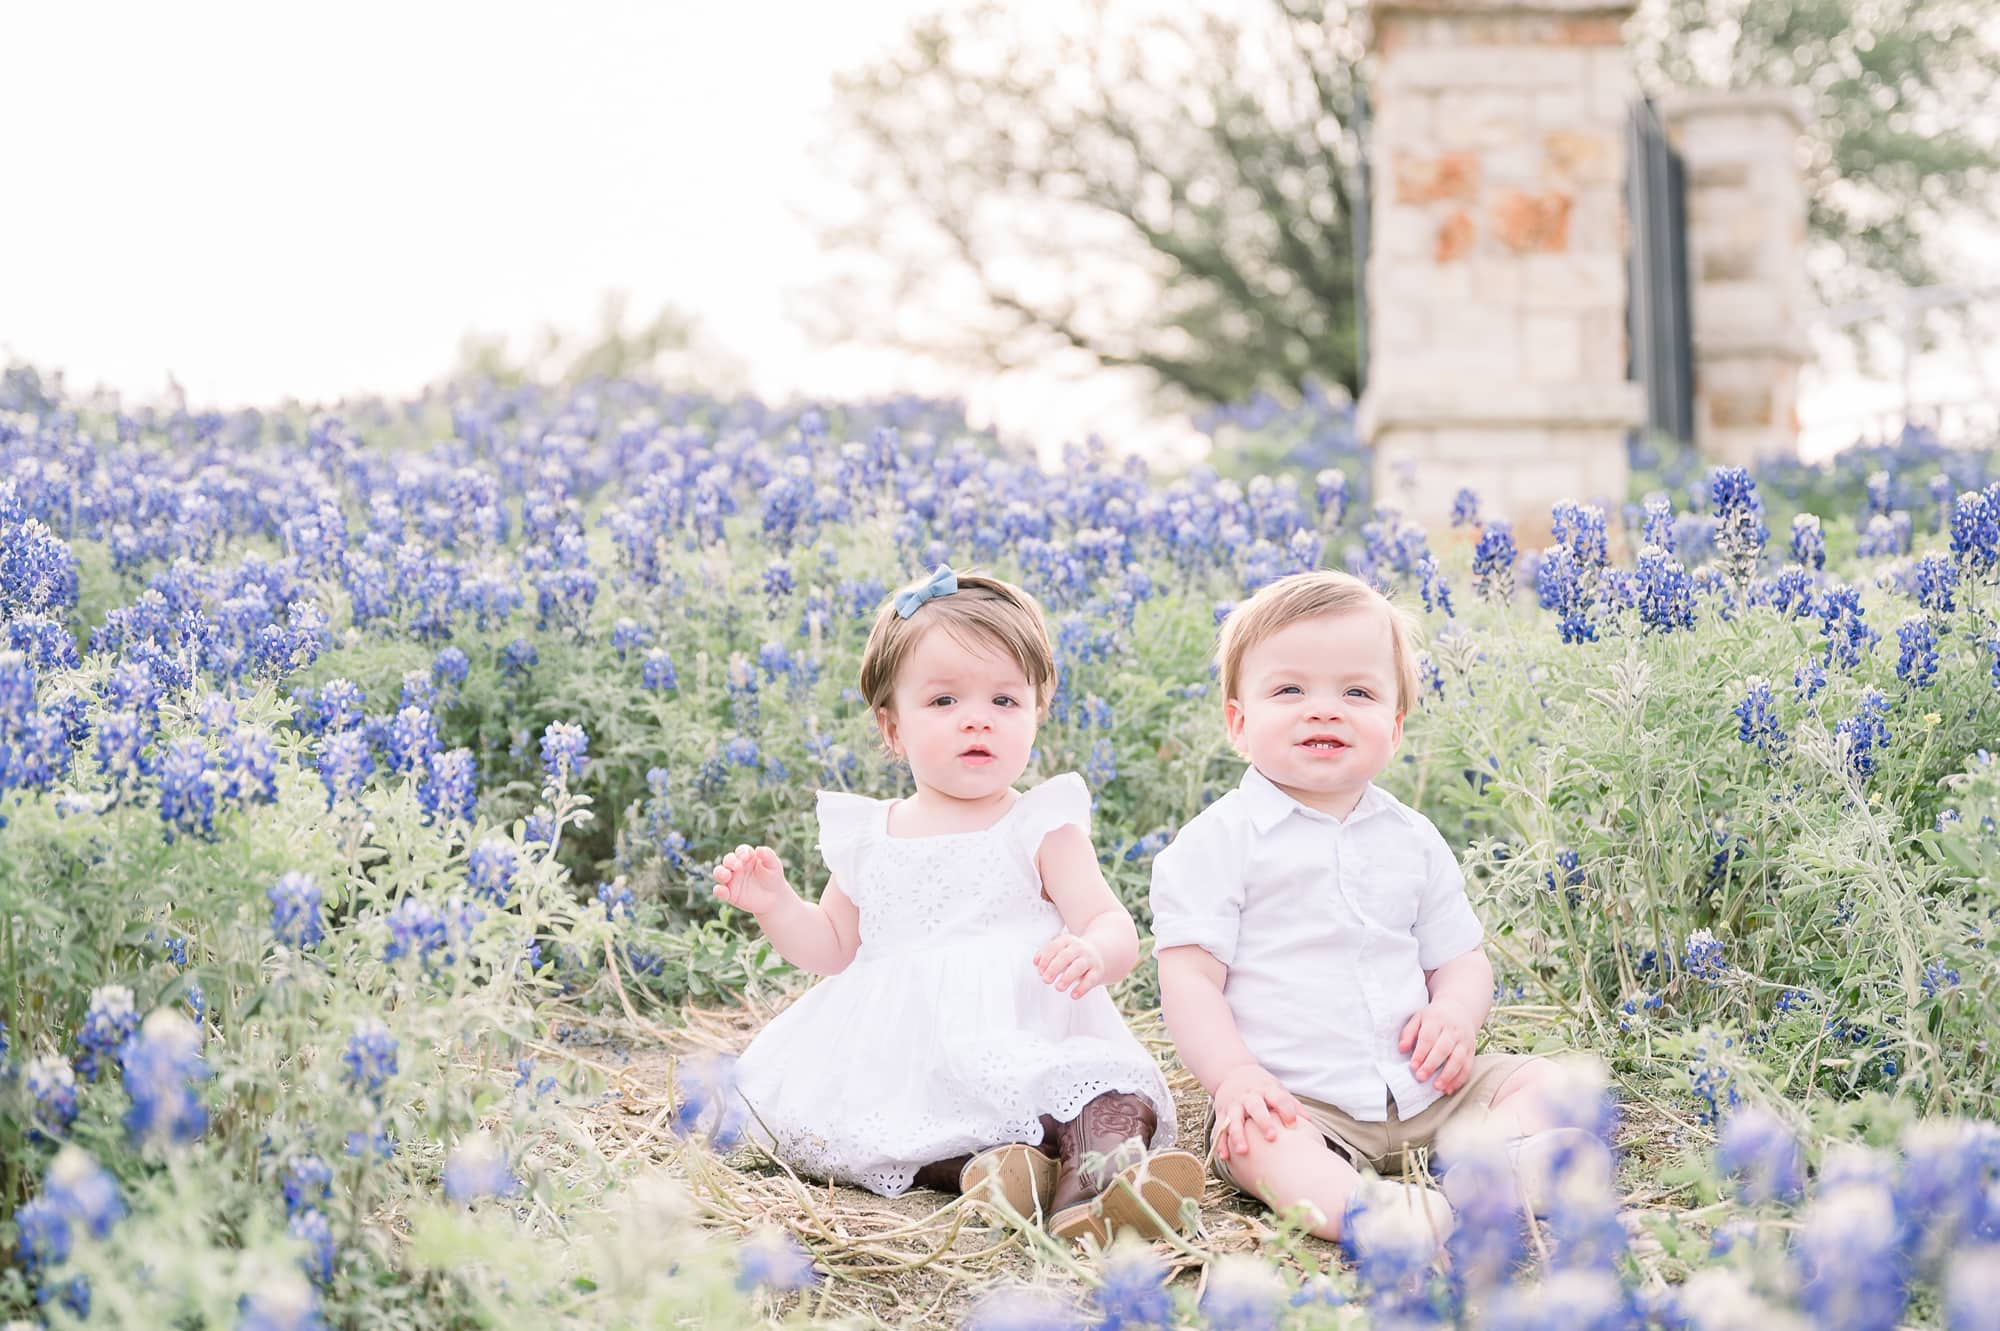 Twin girl and boy sitting in the middle of bluebonnet field in Texas. Photo by Aimee Hamilton Photography.